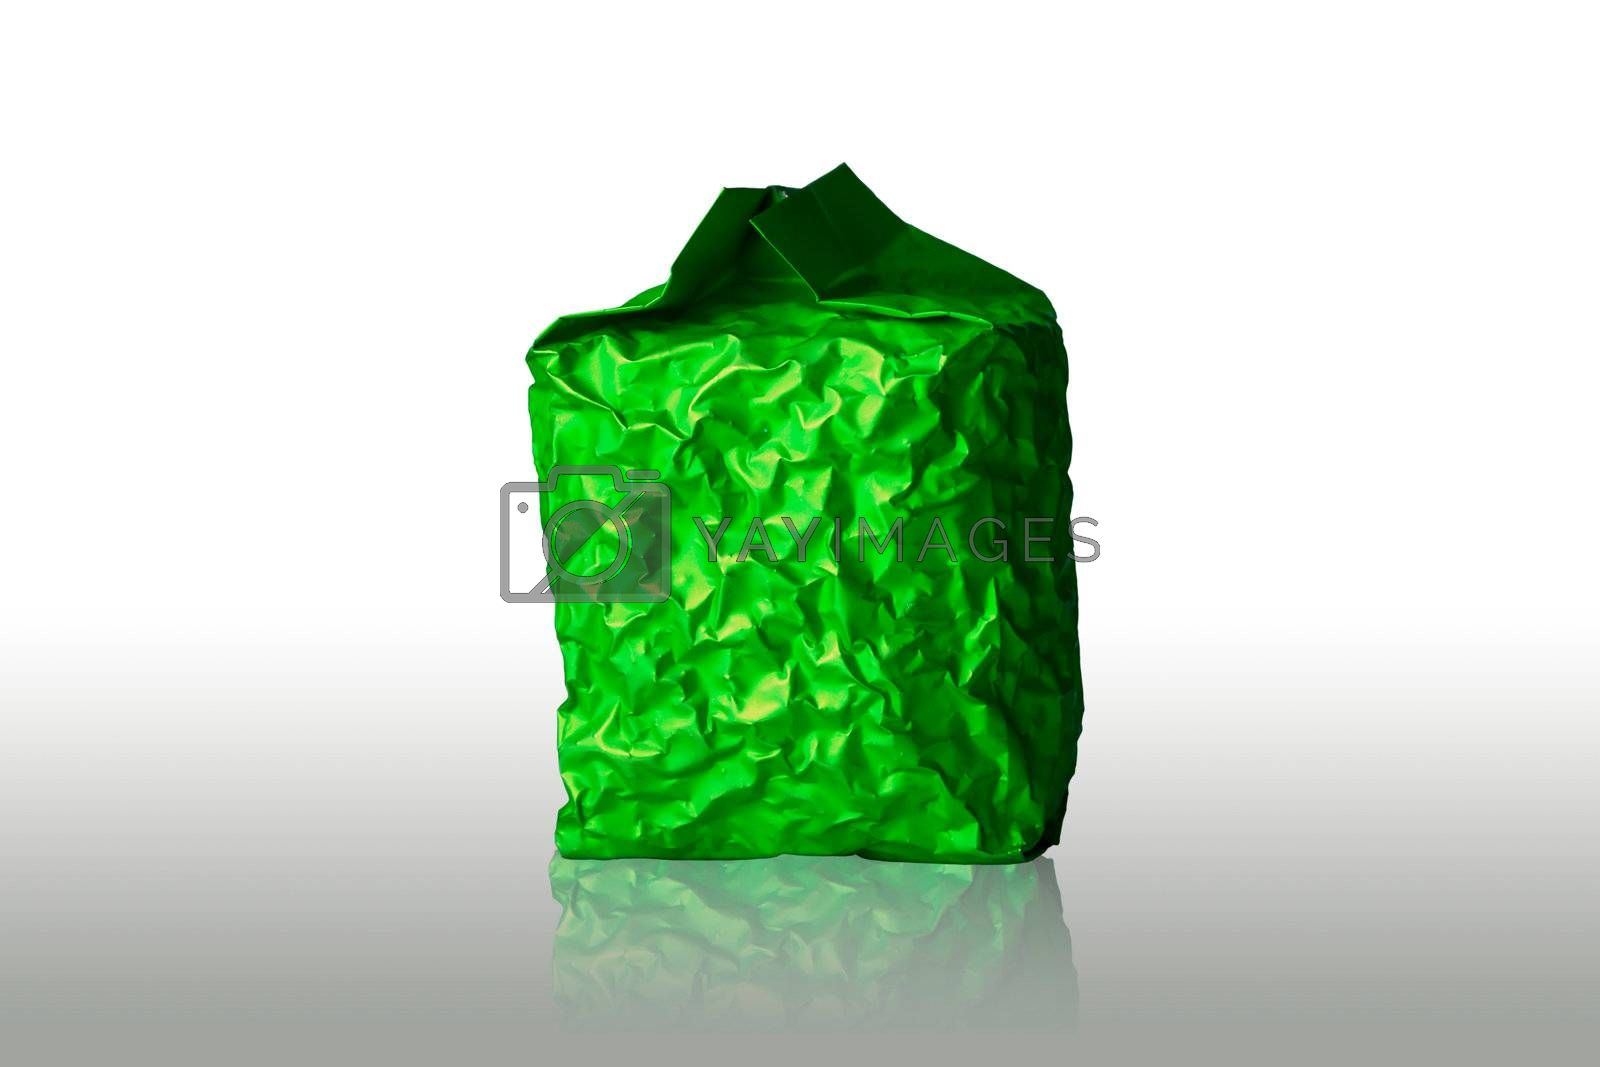 Green Foil Packaging on white background